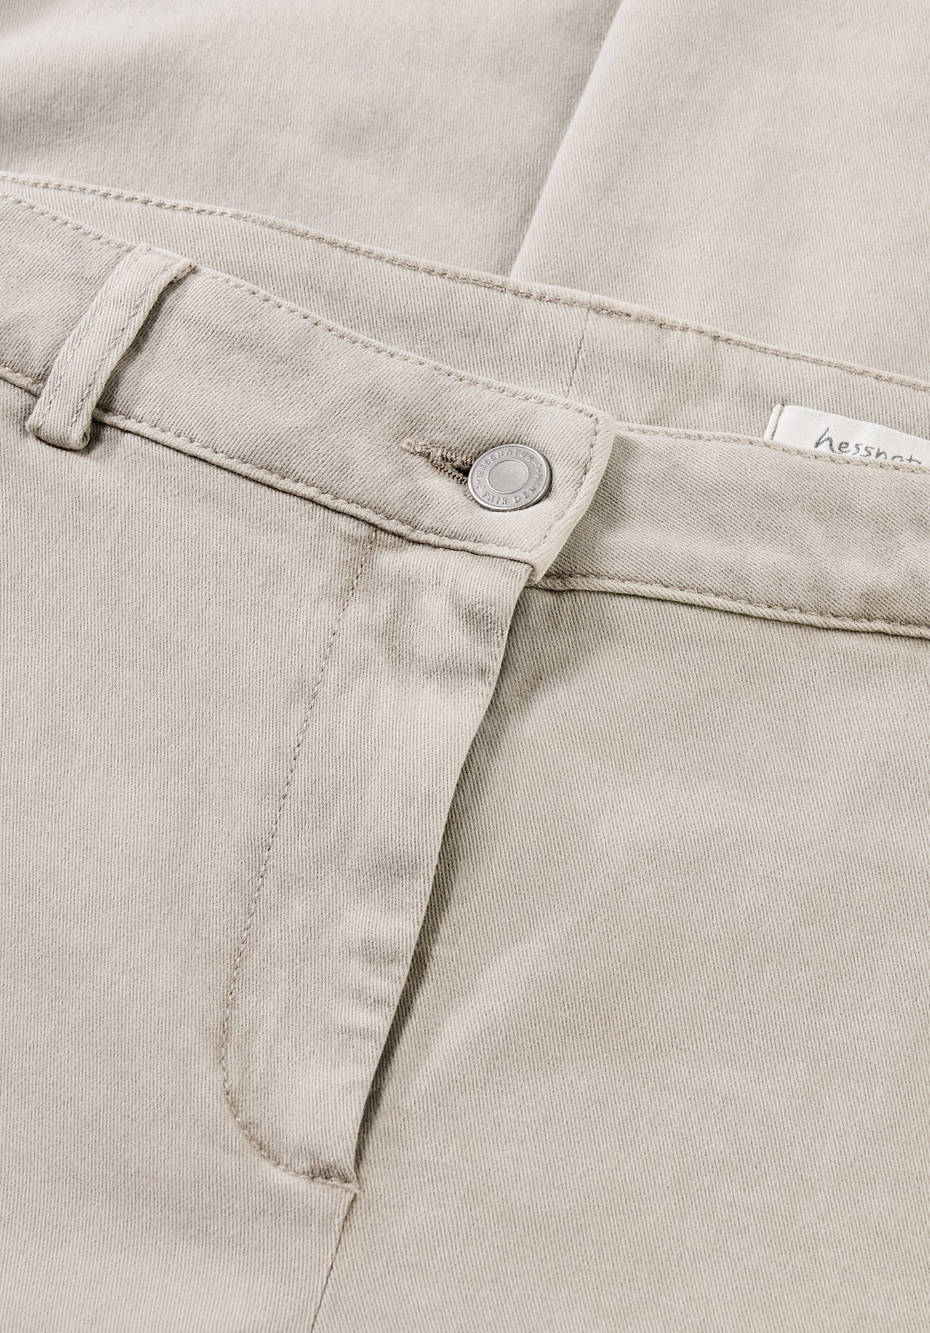 Limited by Nature pants made of mineral-dyed organic cotton